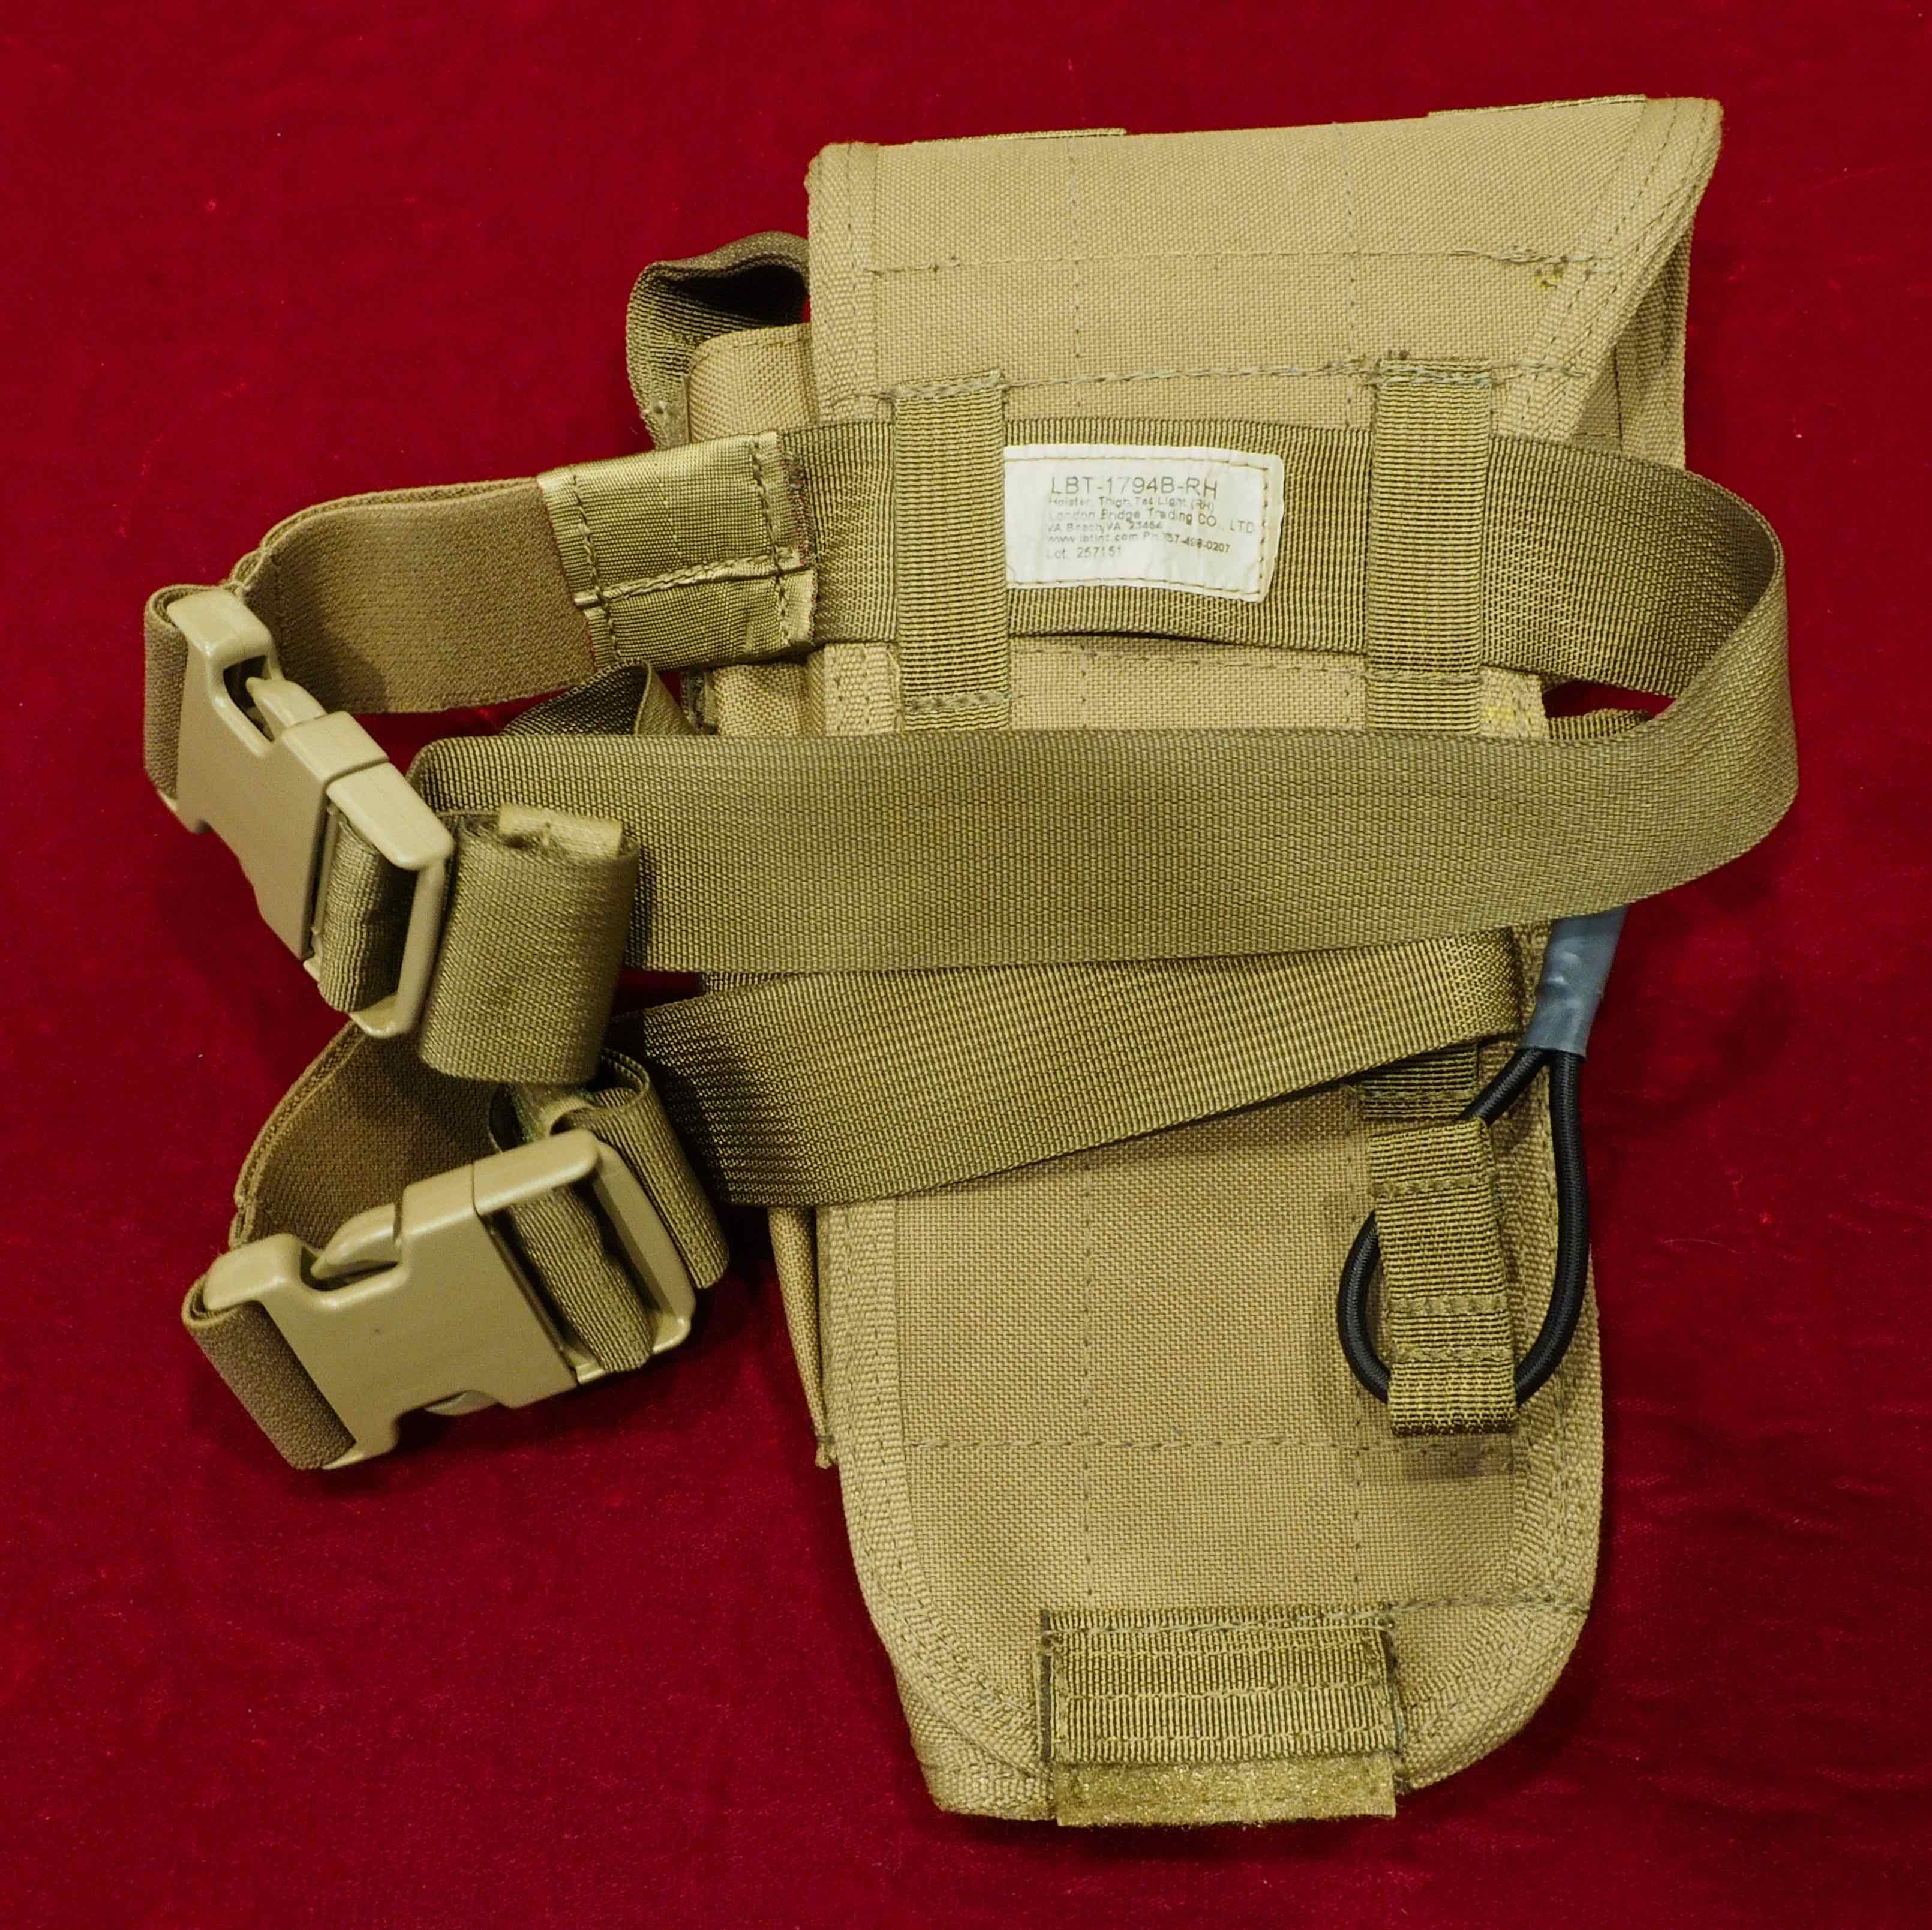 WTS:  LBT-1794B RH Holster for MARK 23 Pistol and Suppressor in Coyote Tan-p1011226.jpg